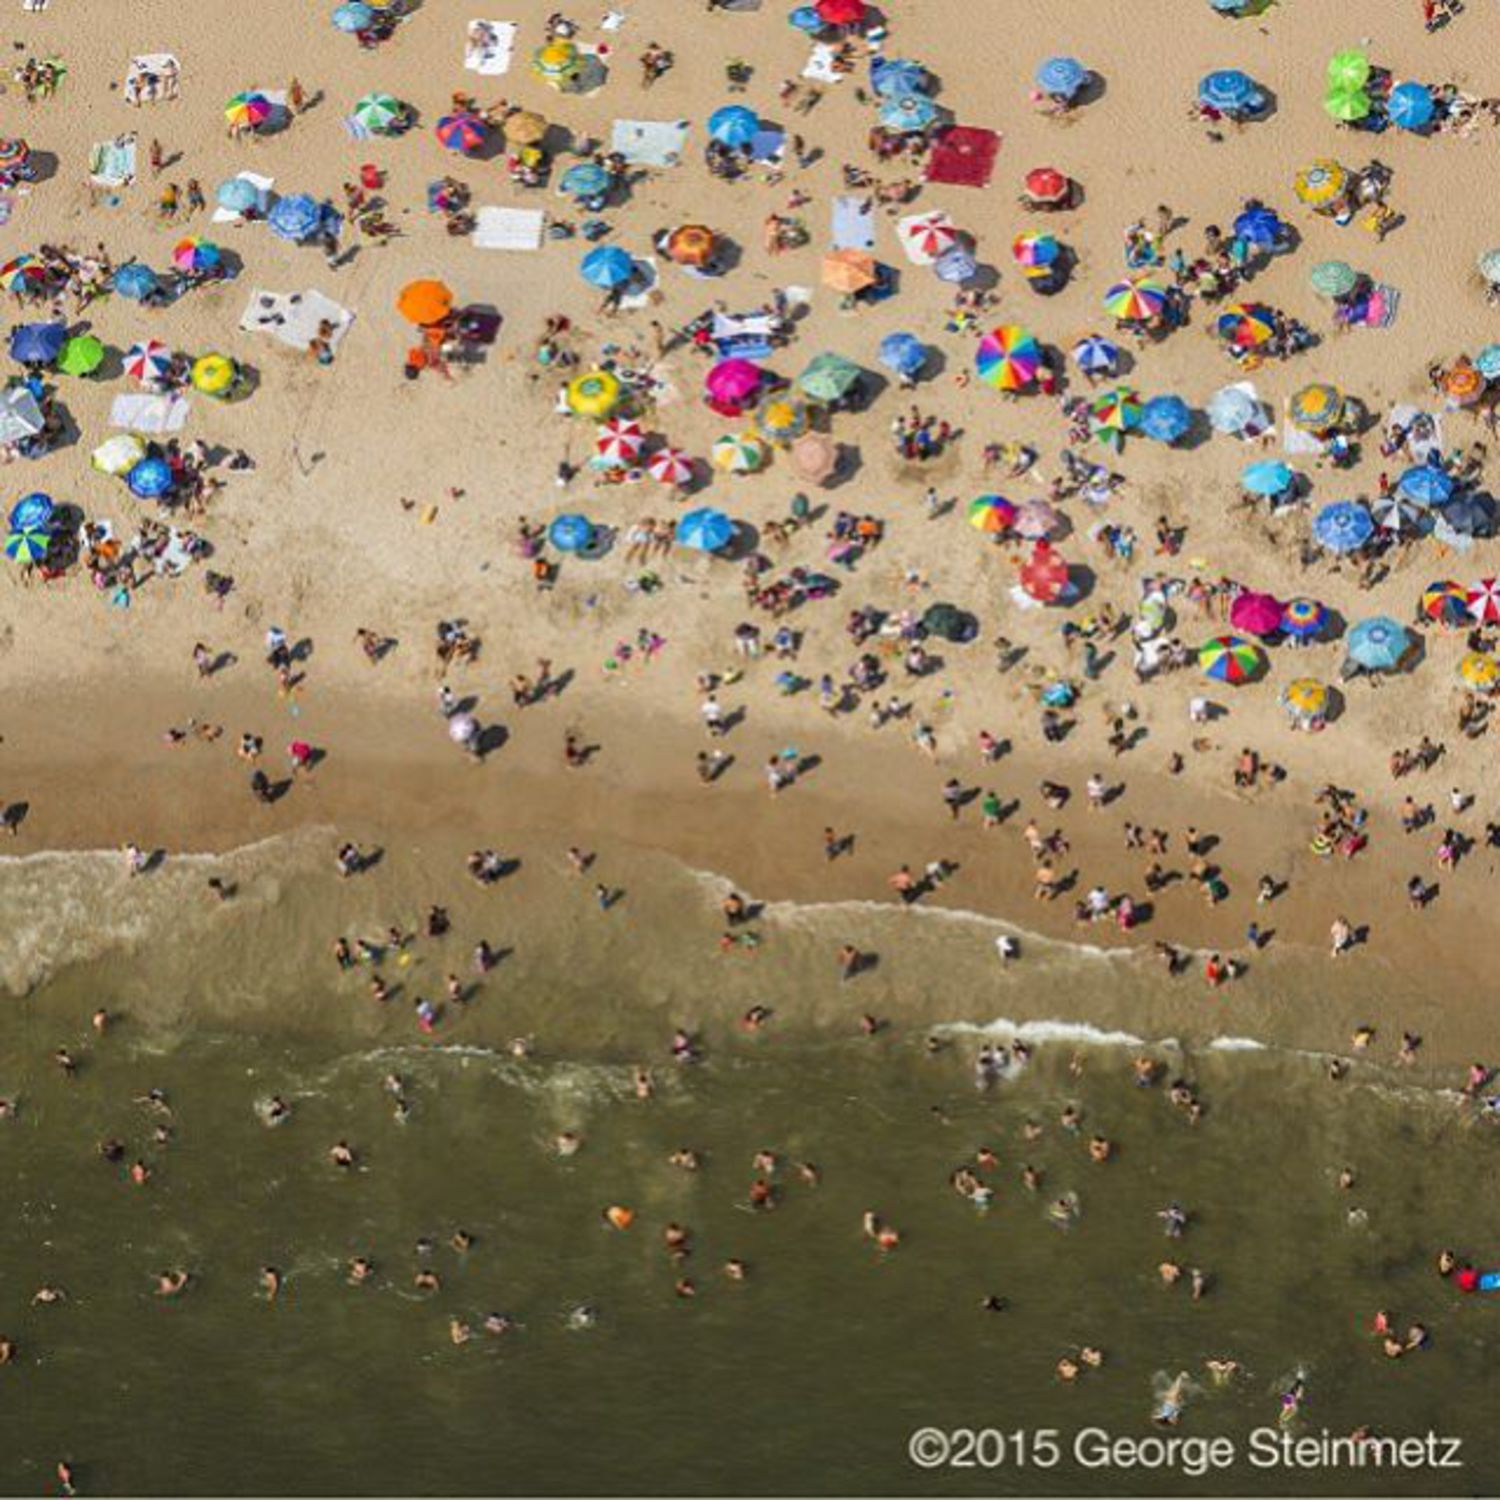 Photograph by George Steinmetz @geosteinmetz / @thephotosociety  Through the 1950s, a million people might squeeze onto New York City's Coney Island Beach on a hot summer day and newspapers would send photographers to Coney Island on the 4th of July to capture the festive scene—in some pictures, you can't see the sand for the people. Today, relaxed sunbathers have more room to stretch out. #airconditioning